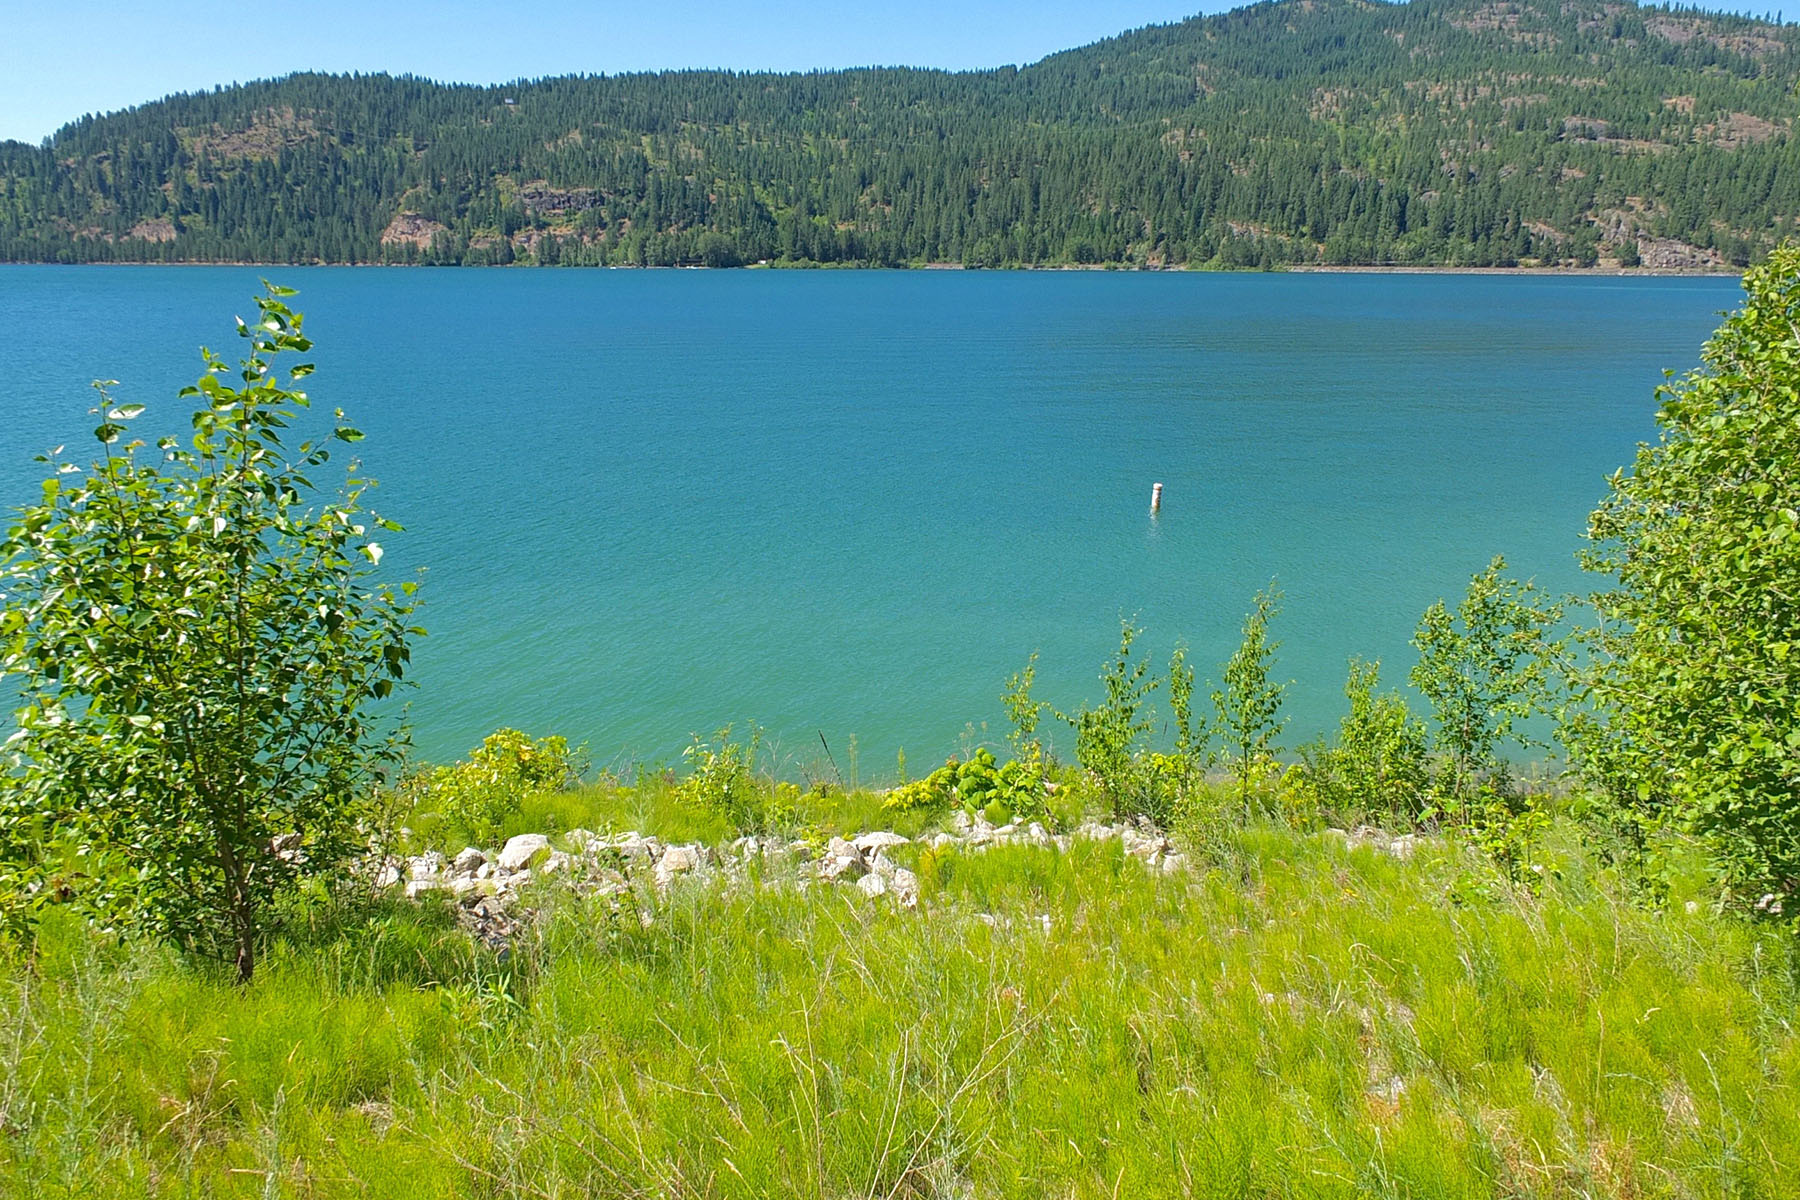 Property For Sale at Exquisite Pend Oreille Riverfront Lot